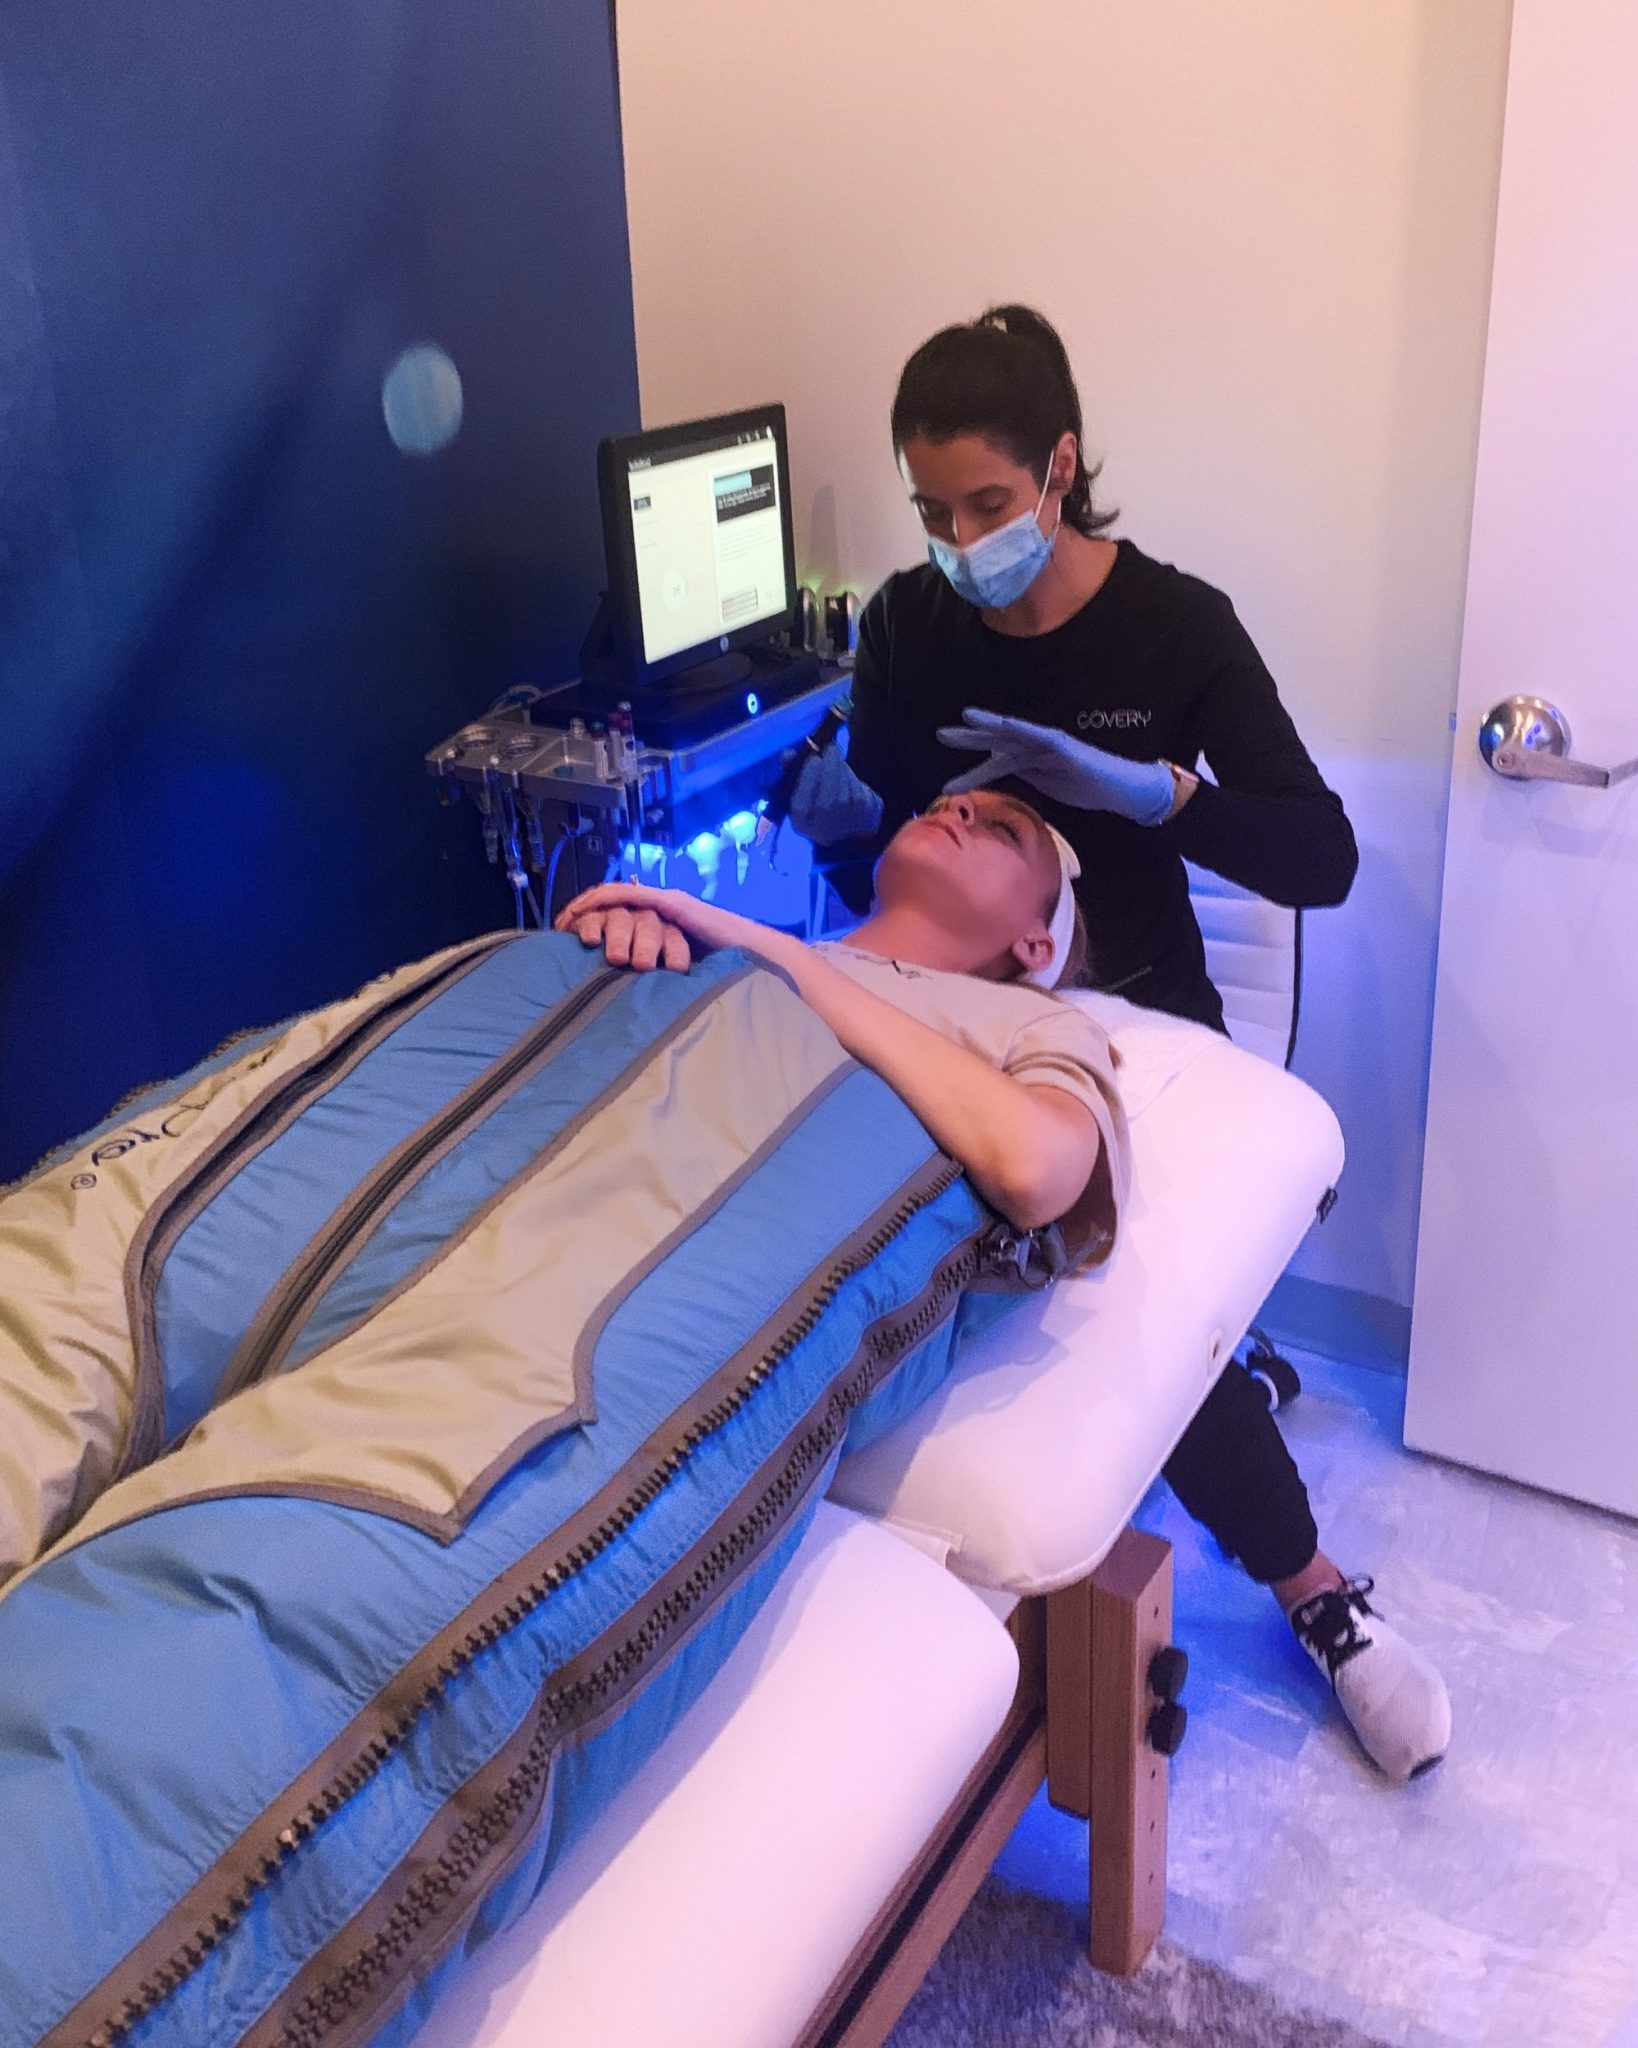 BallancerPro for compression therapy and lymphatic drainage